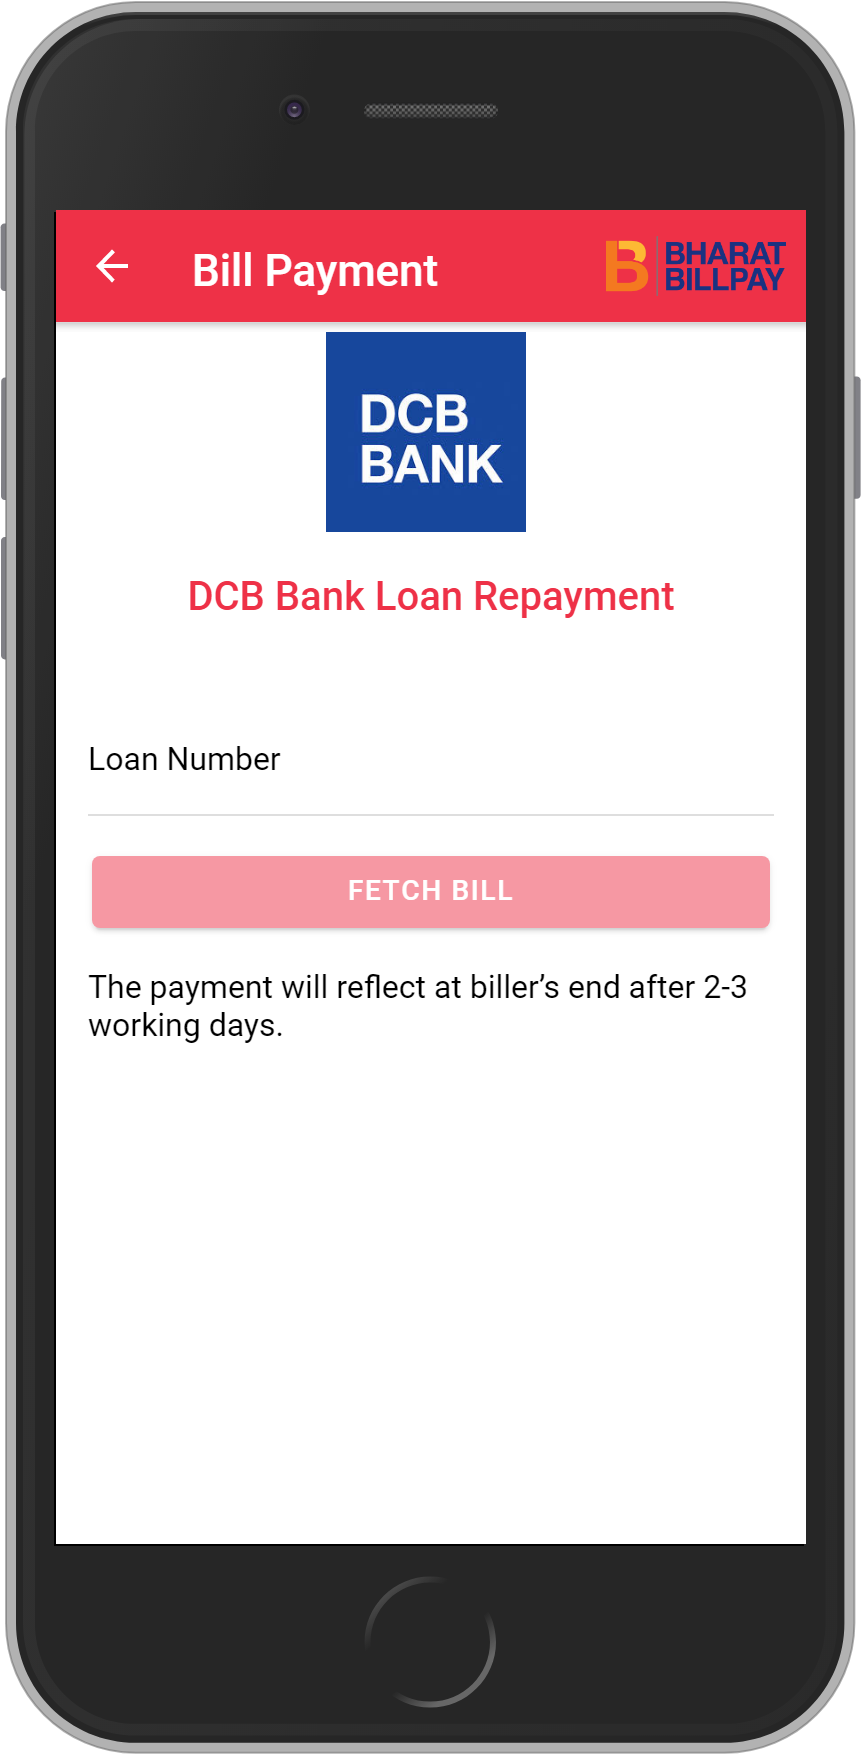 Get UNLIMITED <b>0.1%</b> CASHBACK on DCB Bank Loan Repayment Loan Payment.